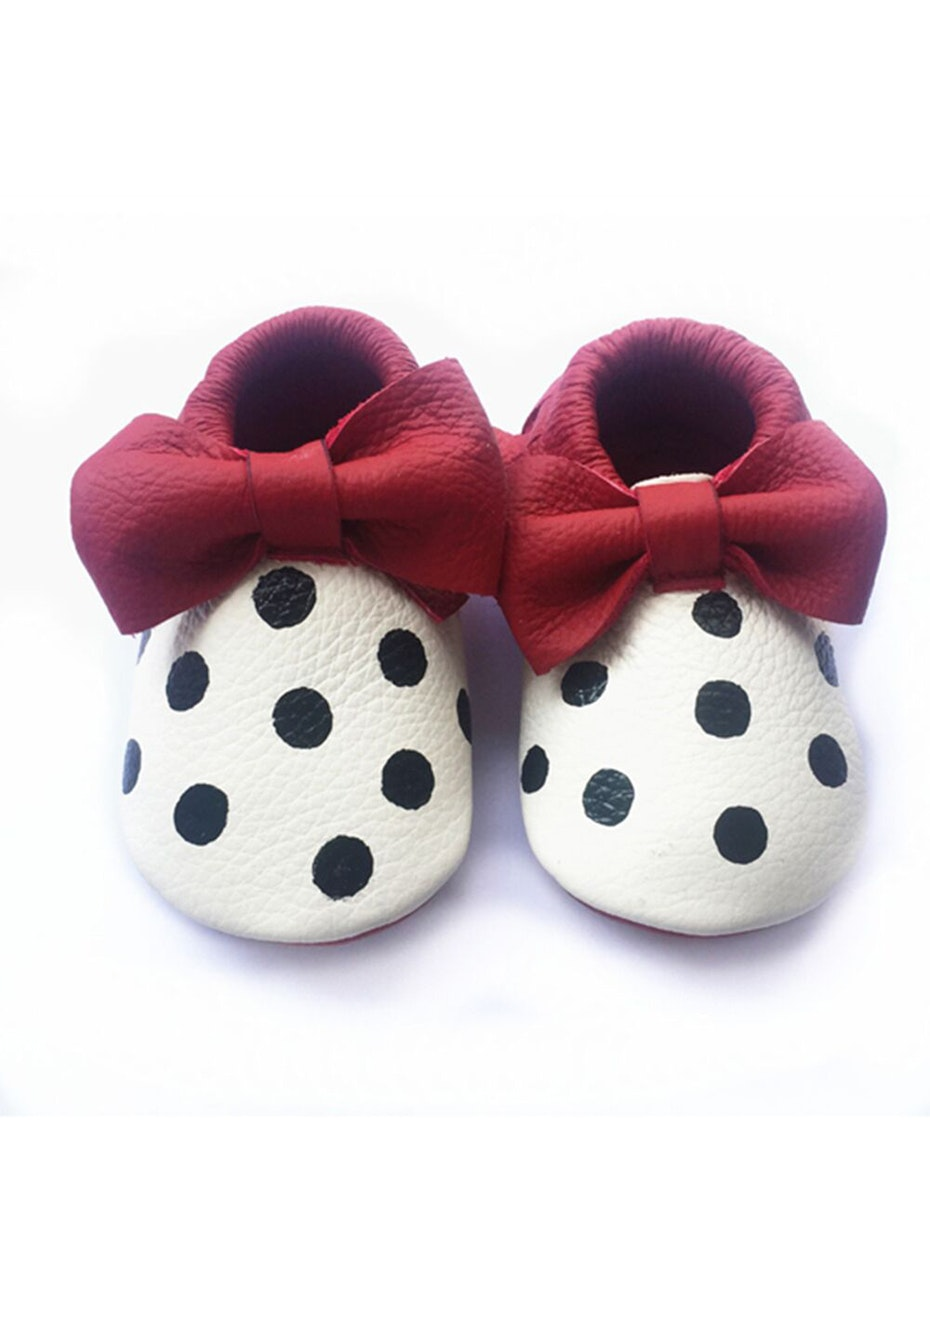 Baby  Leather Shoes - Red / White / Black Dot